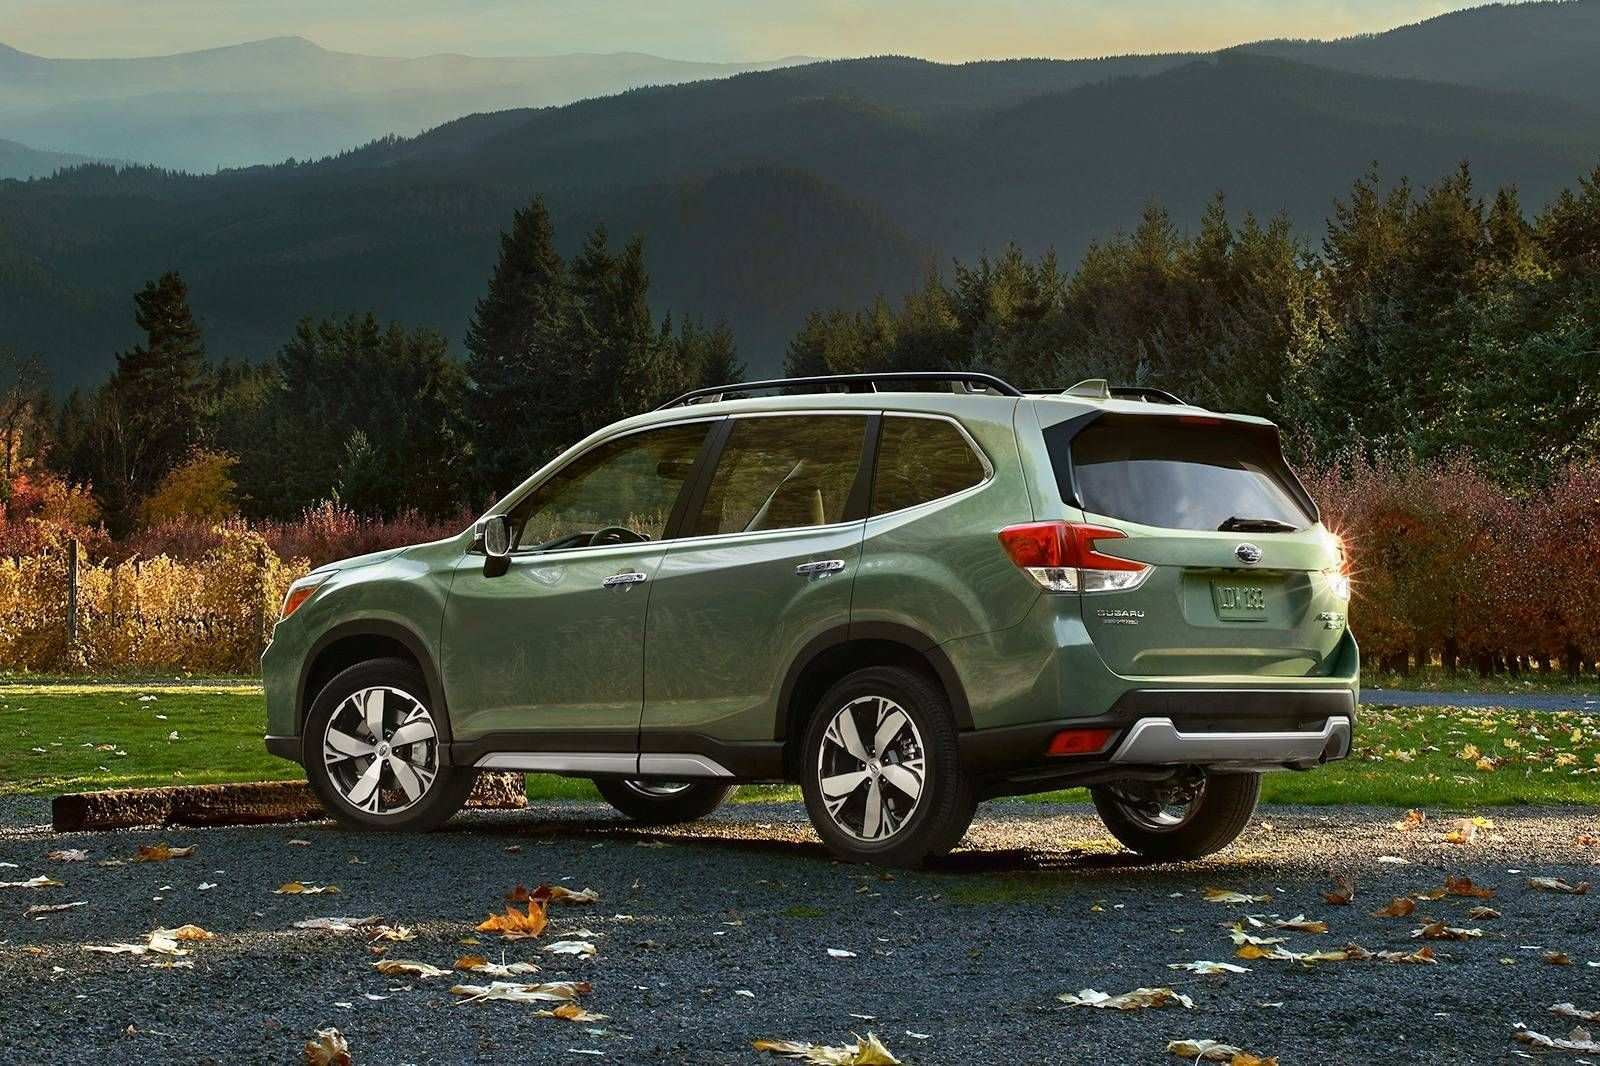 45 Best Subaru Forester 2019 Gas Mileage Wallpaper